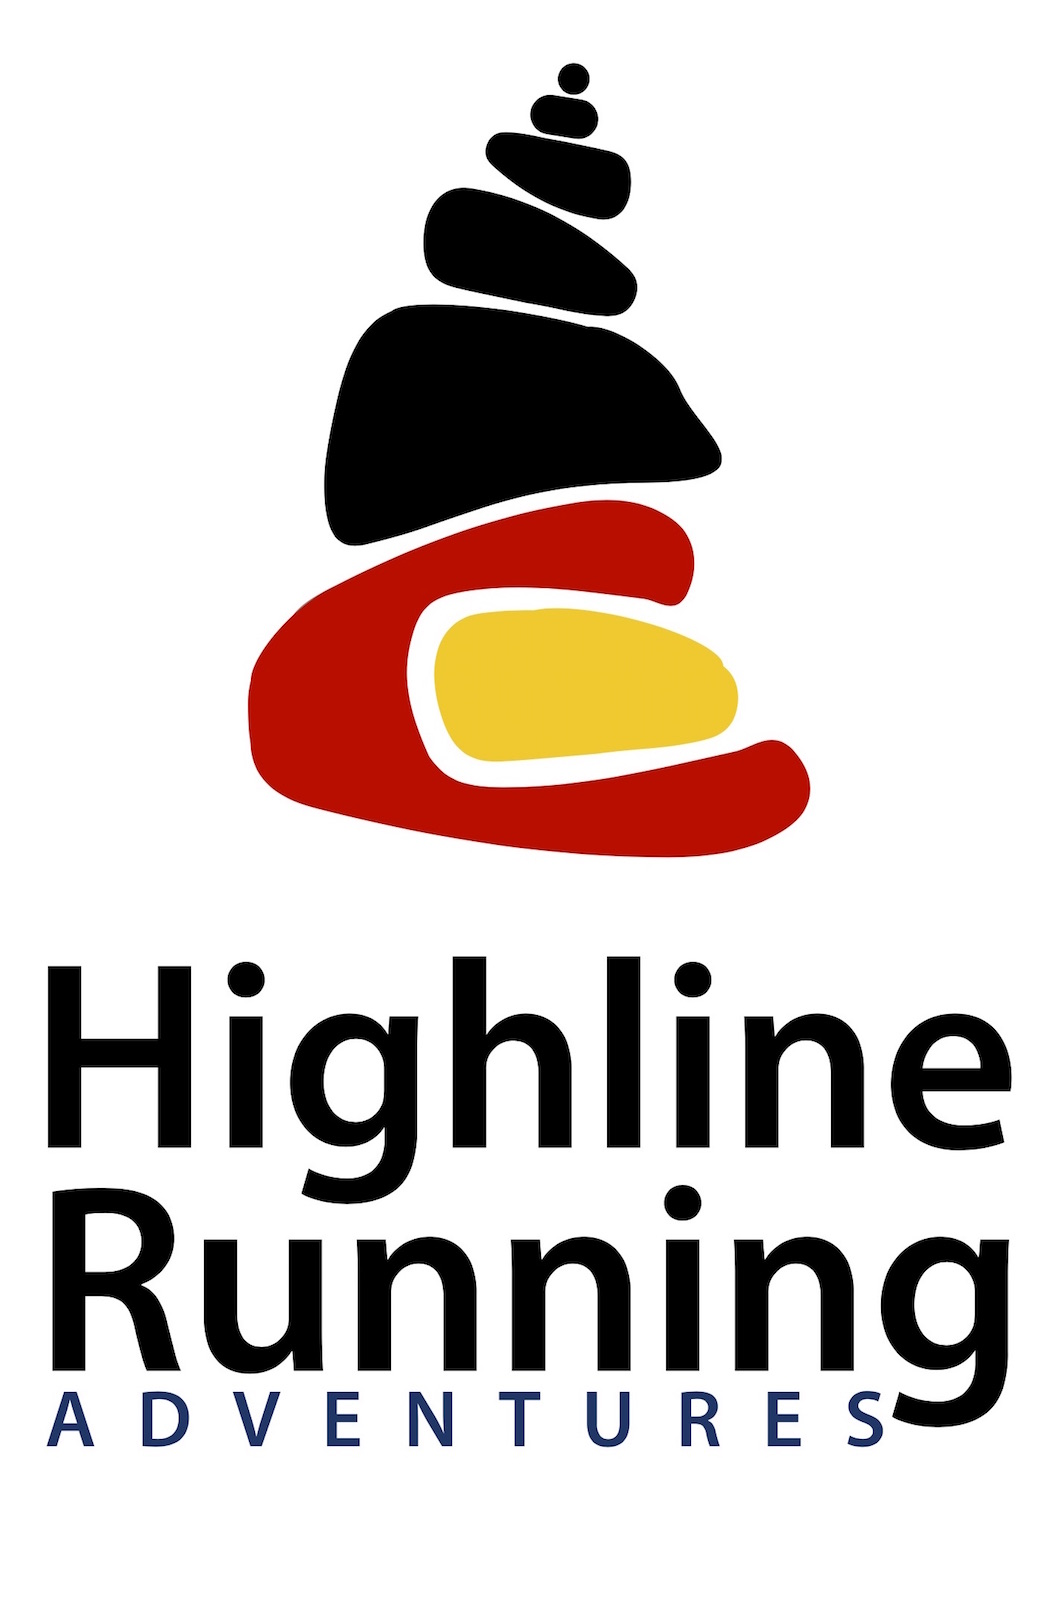 Highline Running Adventures - Highline Running Adventures is an adventure trail running company  located in the heart of the San Juan Mountains of Southwest Colorado. We  offer scenic single and multi-day trail running tours,in addition  tomulti-week